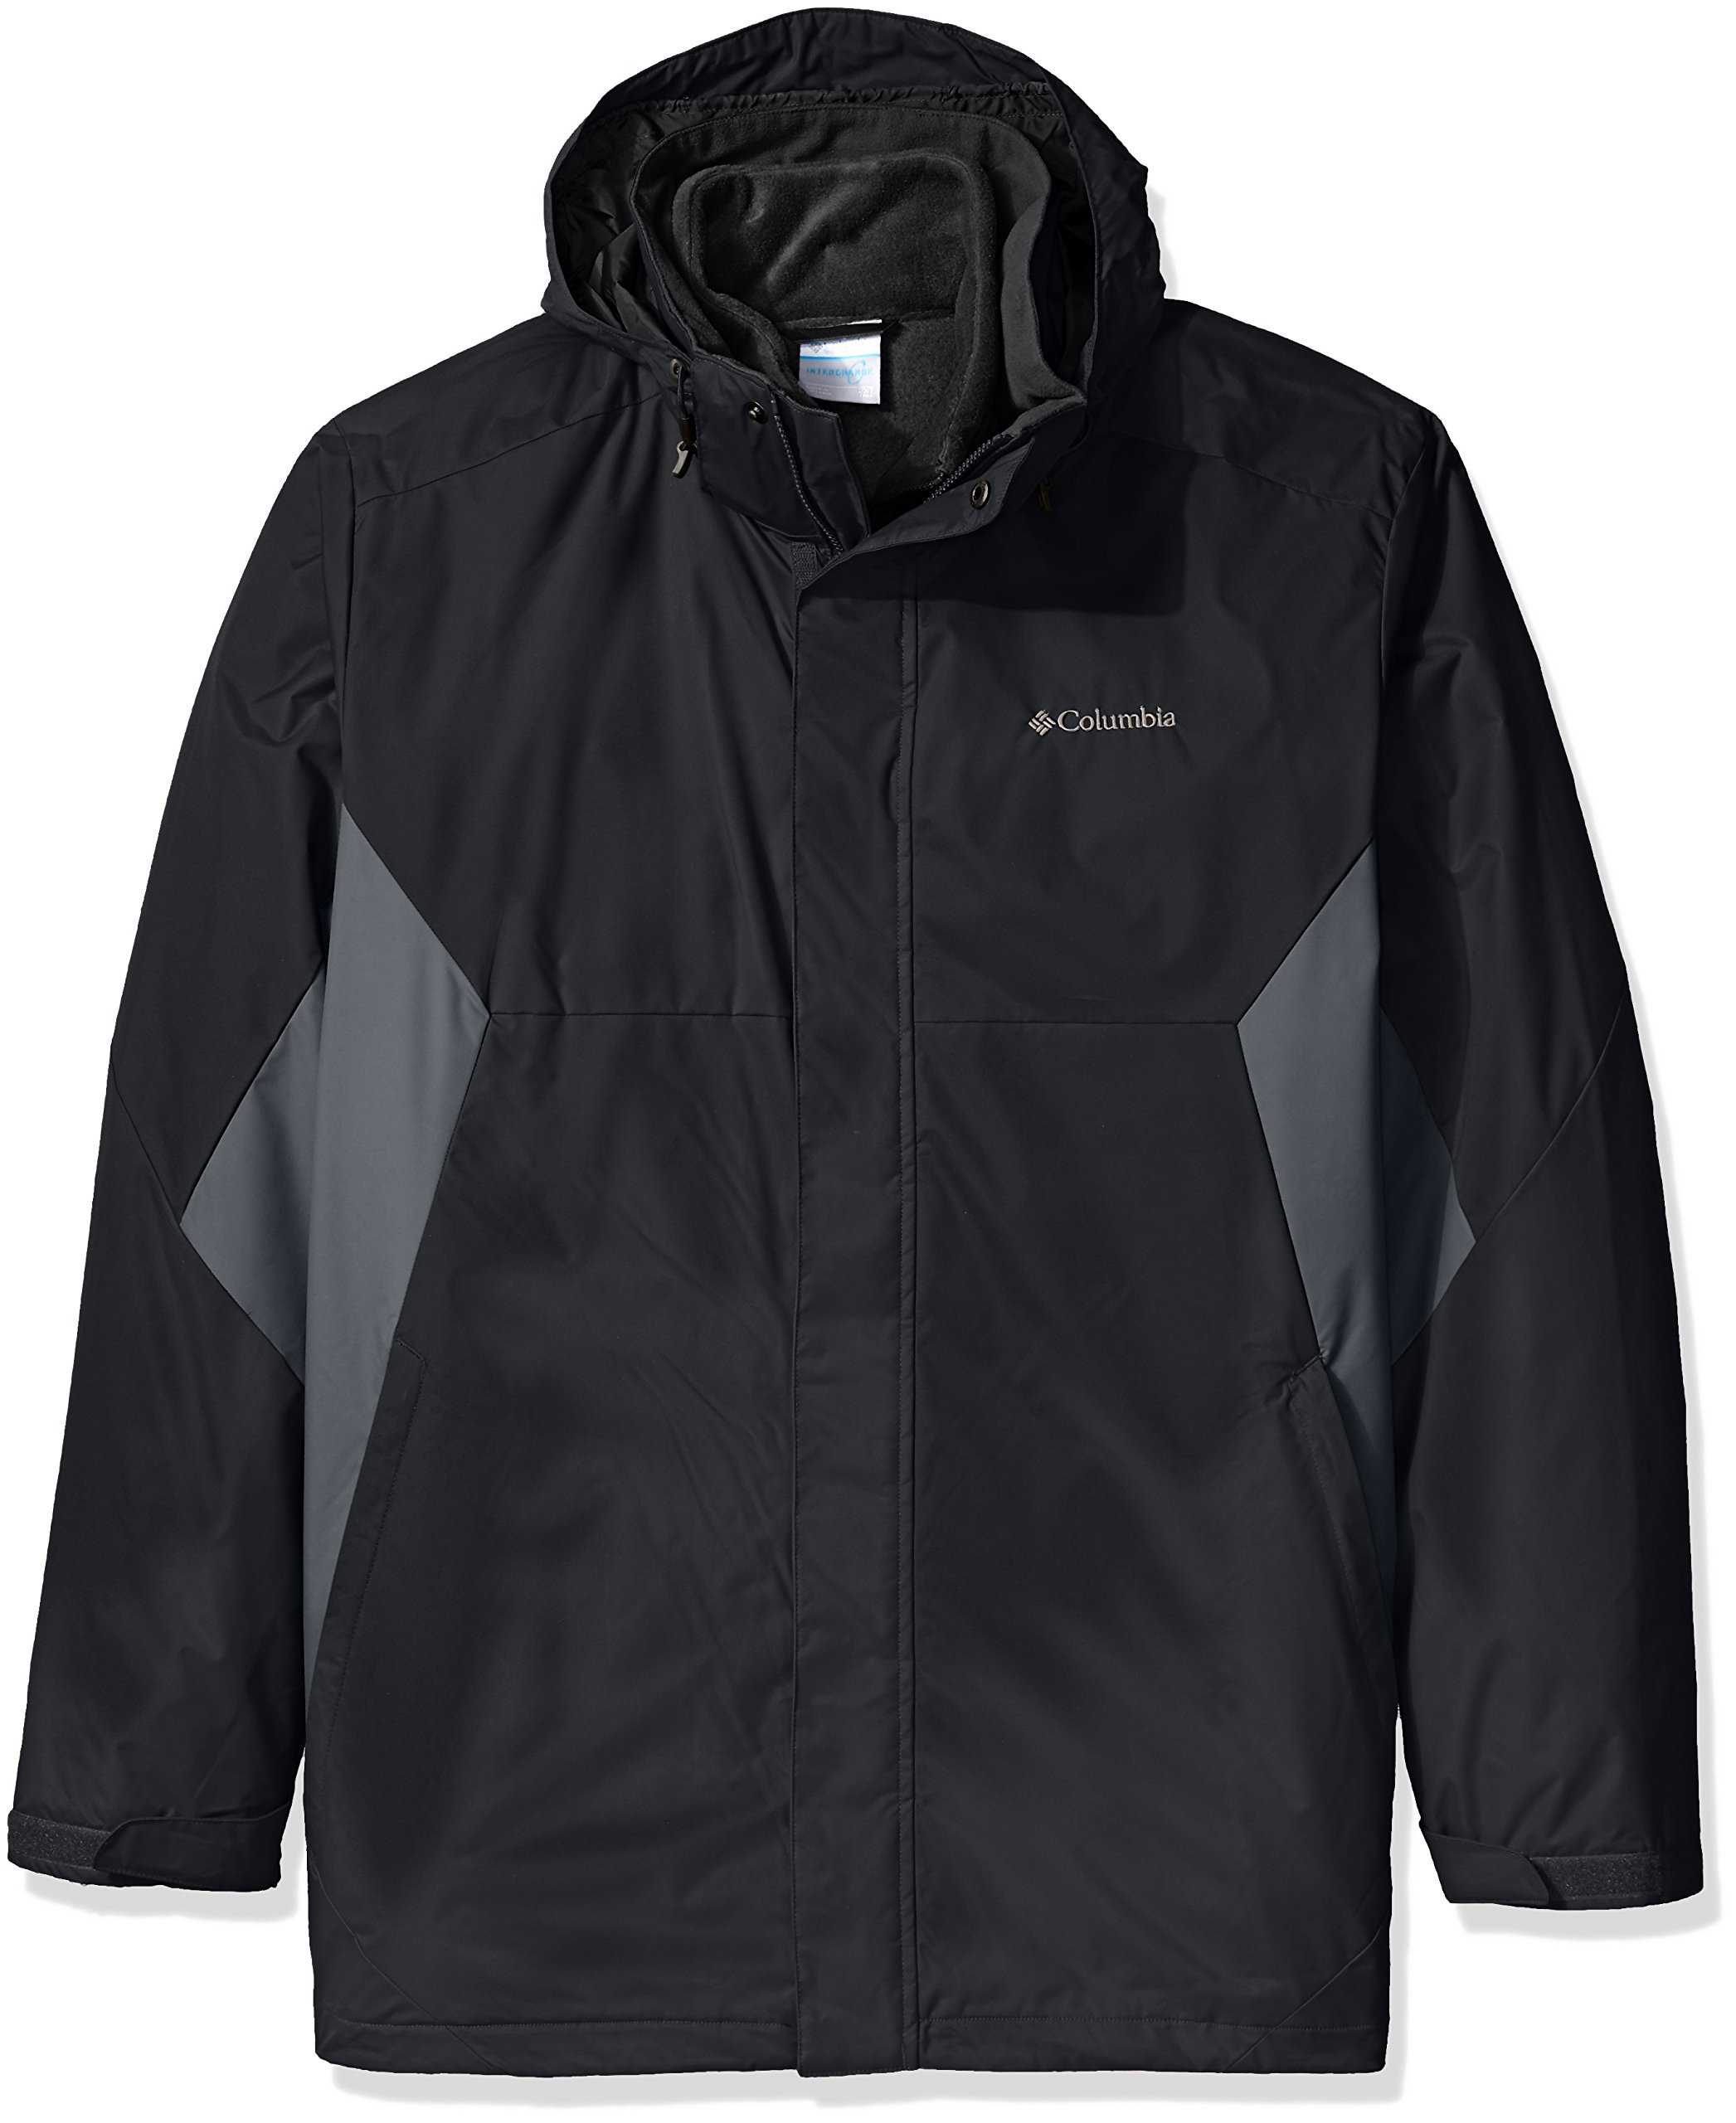 Columbia Men's Big Big & Tall Eager Air Interchange 3-in-1 Jacket, black, Graphite, 3X Tall by Columbia